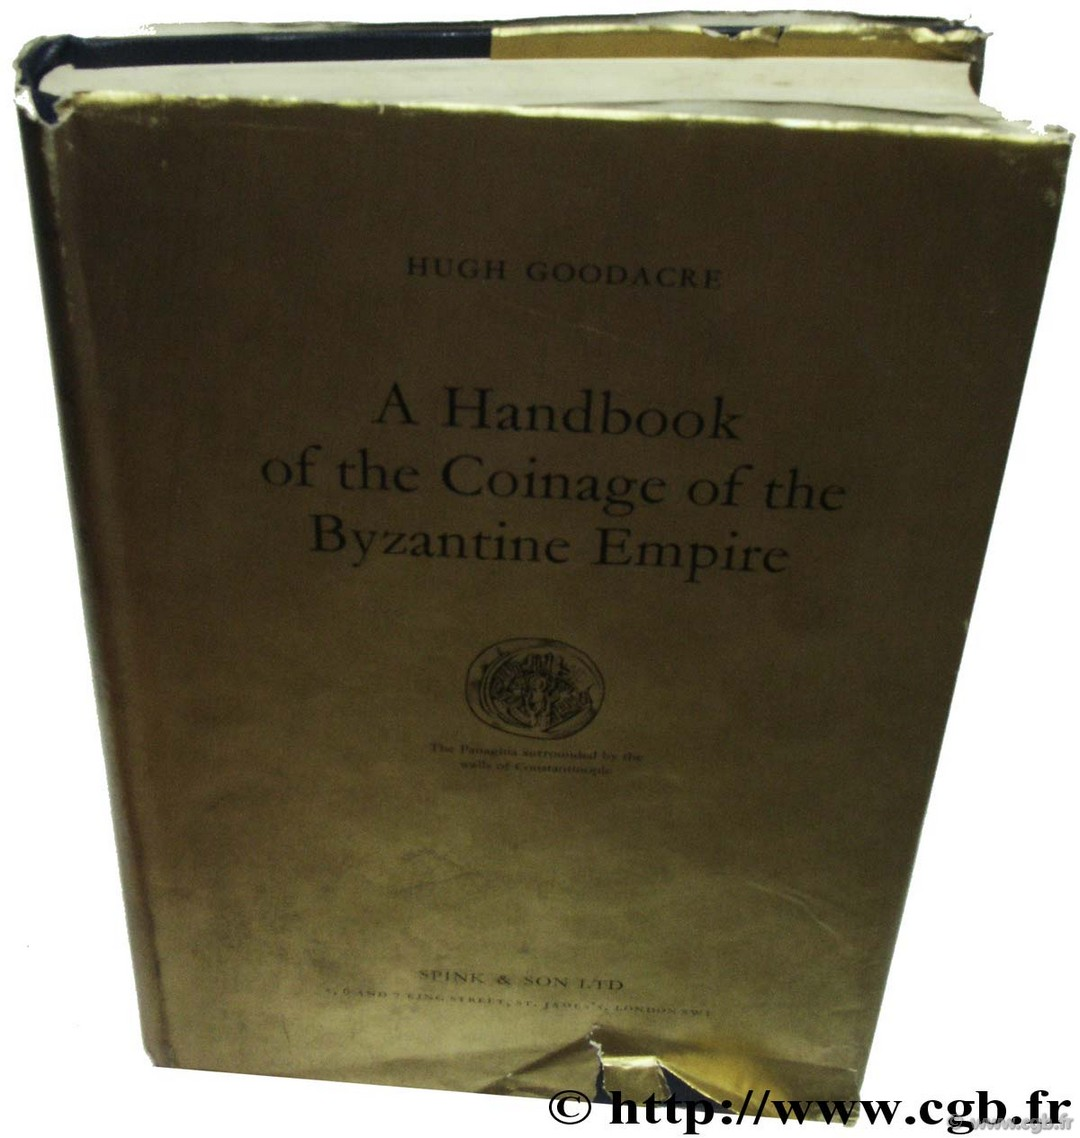 A handbook of the coinage of the byzantine empire GOODACRE H.